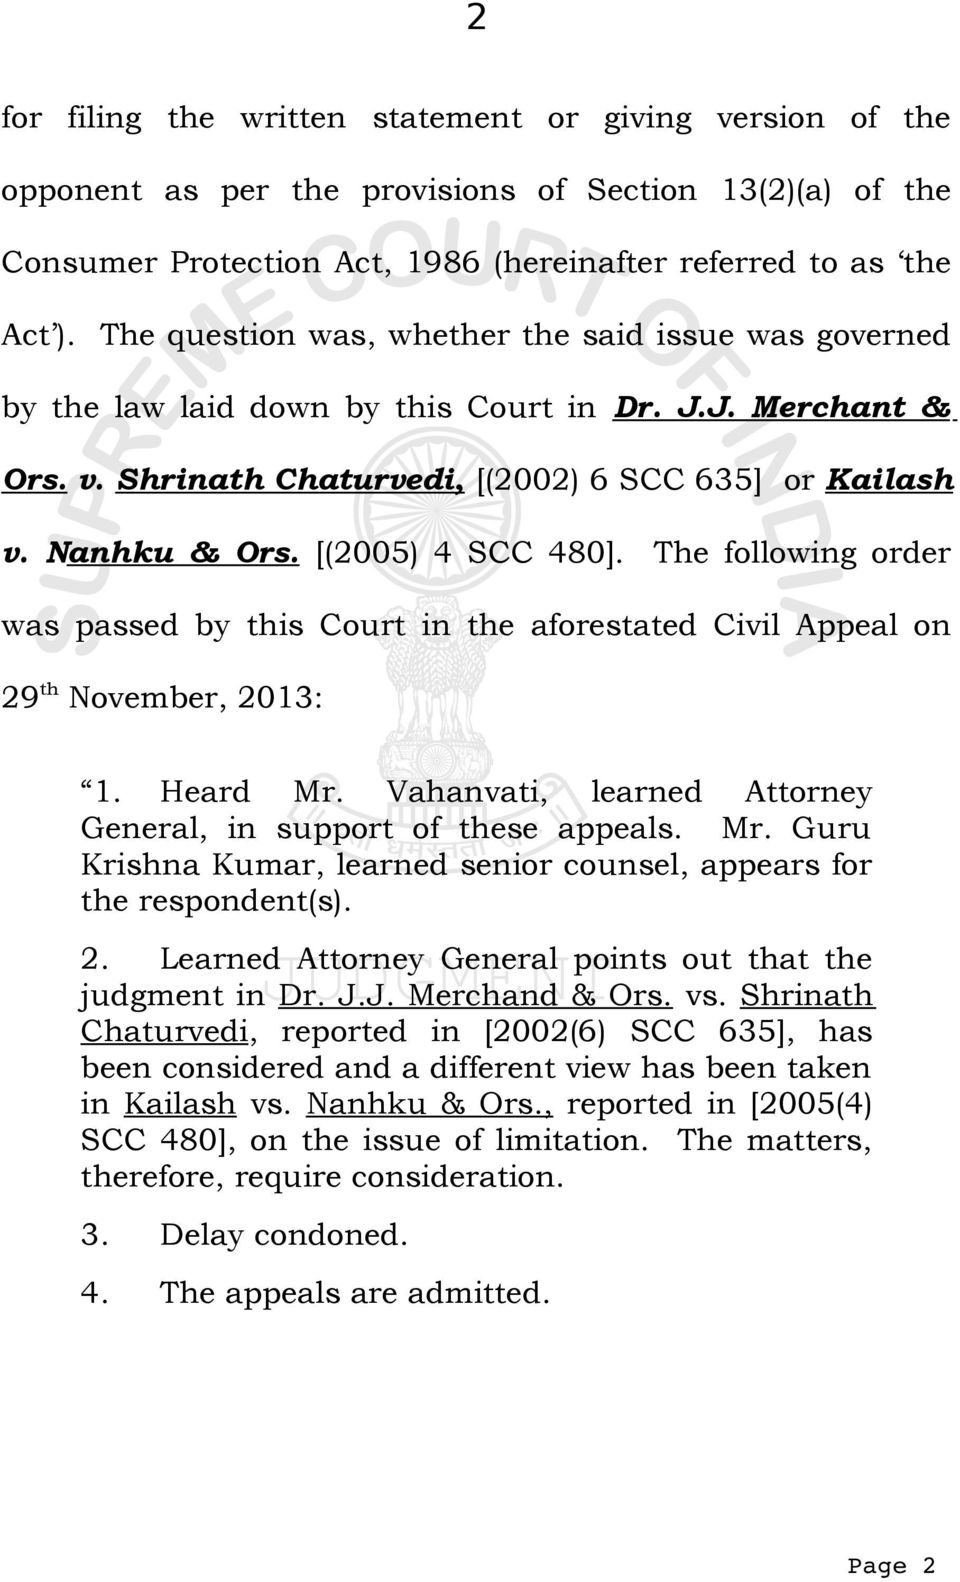 [(2005) 4 SCC 480]. The following order was passed by this Court in the aforestated Civil Appeal on 29 th November, 2013: 1. Heard Mr. Vahanvati, learned Attorney General, in support of these appeals.